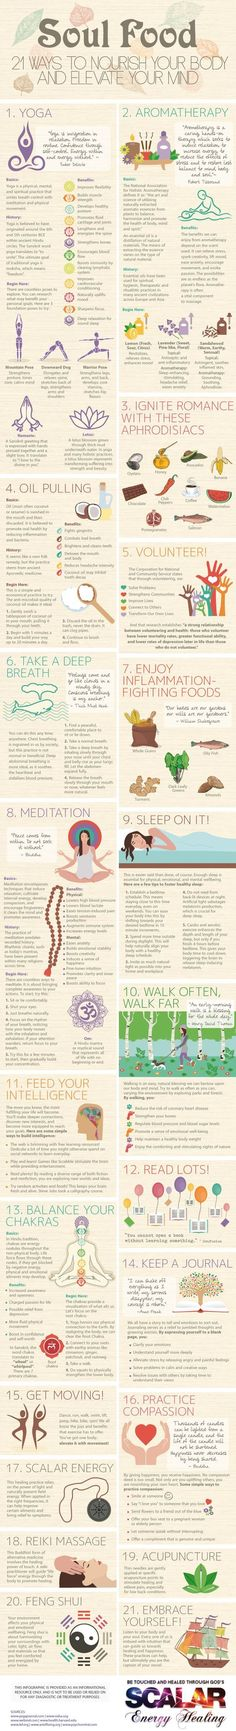 21 Ways to Nourish Your Body and Elevate Your Mind #infographic #Health: